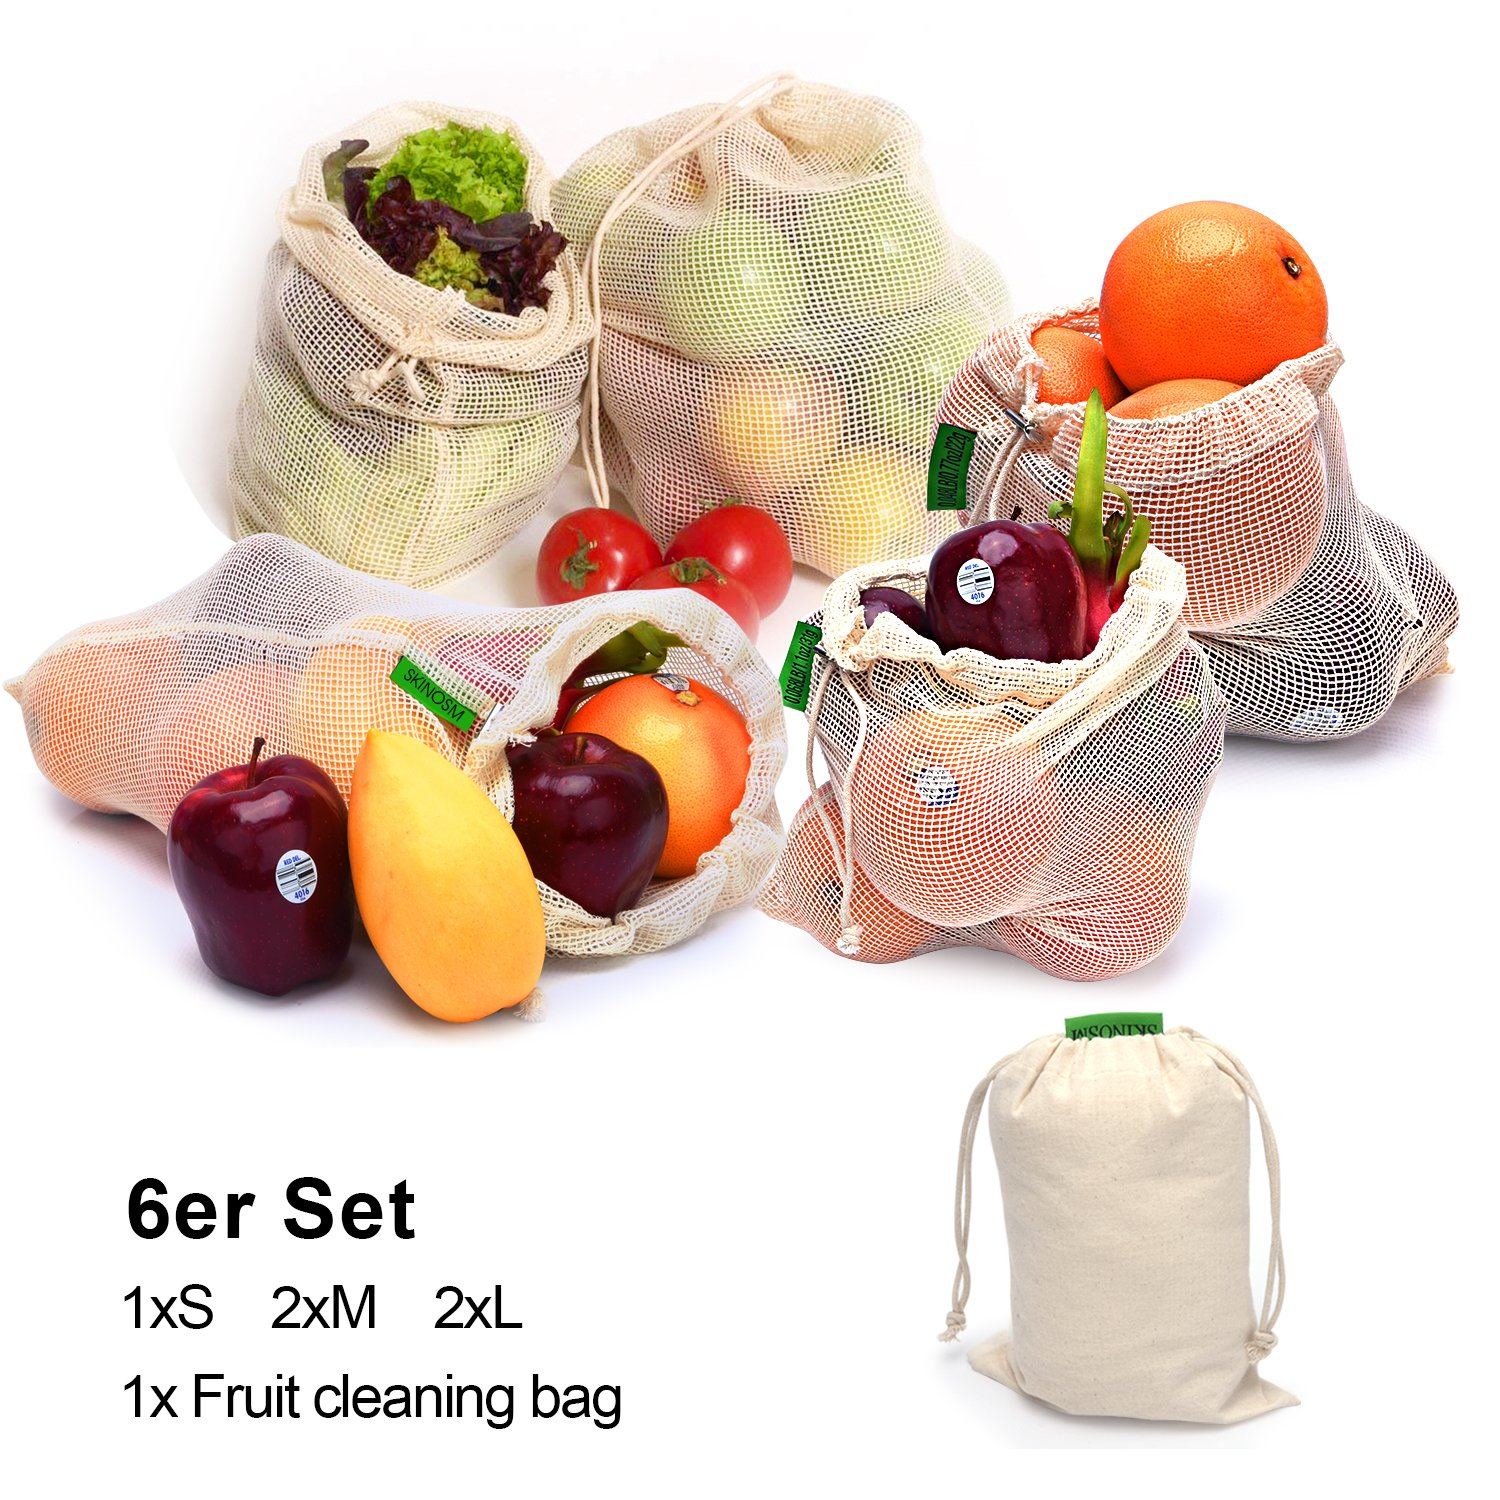 Premium Fruit and Vegetable Bags, Eco Bag, Reusable Shopping Bags, Natural Cotton Mesh, 6 Set,Different Size